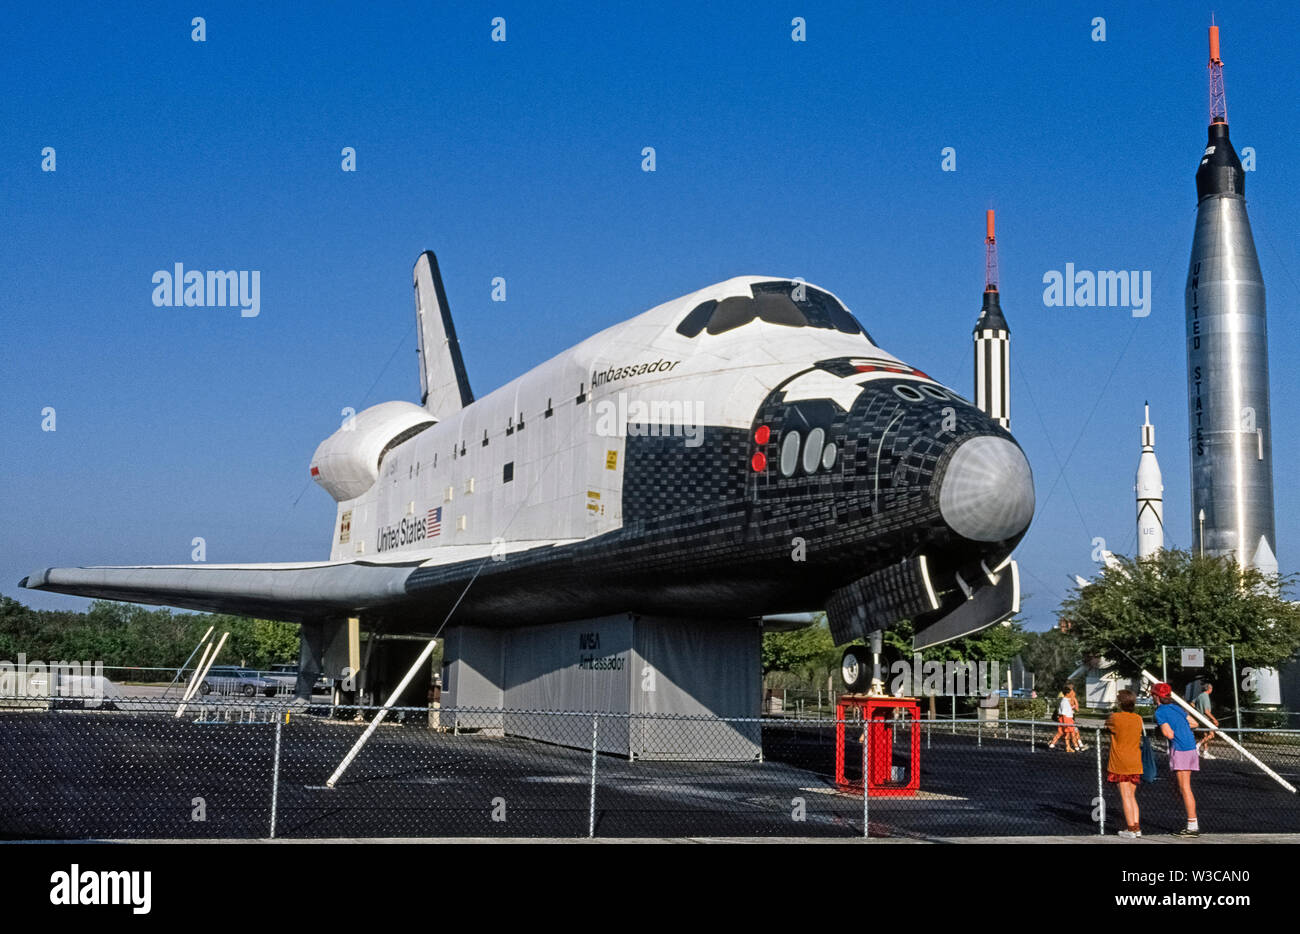 A mock-up of a Space Shuttle orbiter designed to transport astronauts and cargo to and from the International Space Station circling our planet was on display outdoors at the Kennedy Space Center near Cape Canaveral in Florida, USA, when this photograph was taken in 1976. The Ambassador was a full-size replica of six rocket-boosted shuttles that made 135 flights while being operated by the United States National Aeronautics and Space Administration (NASA) from 1981 to 2011. Nowadays the last of those retired space shuttles to fly, the Atlantis, is on exhibit at the Kennedy Space Center. Stock Photo